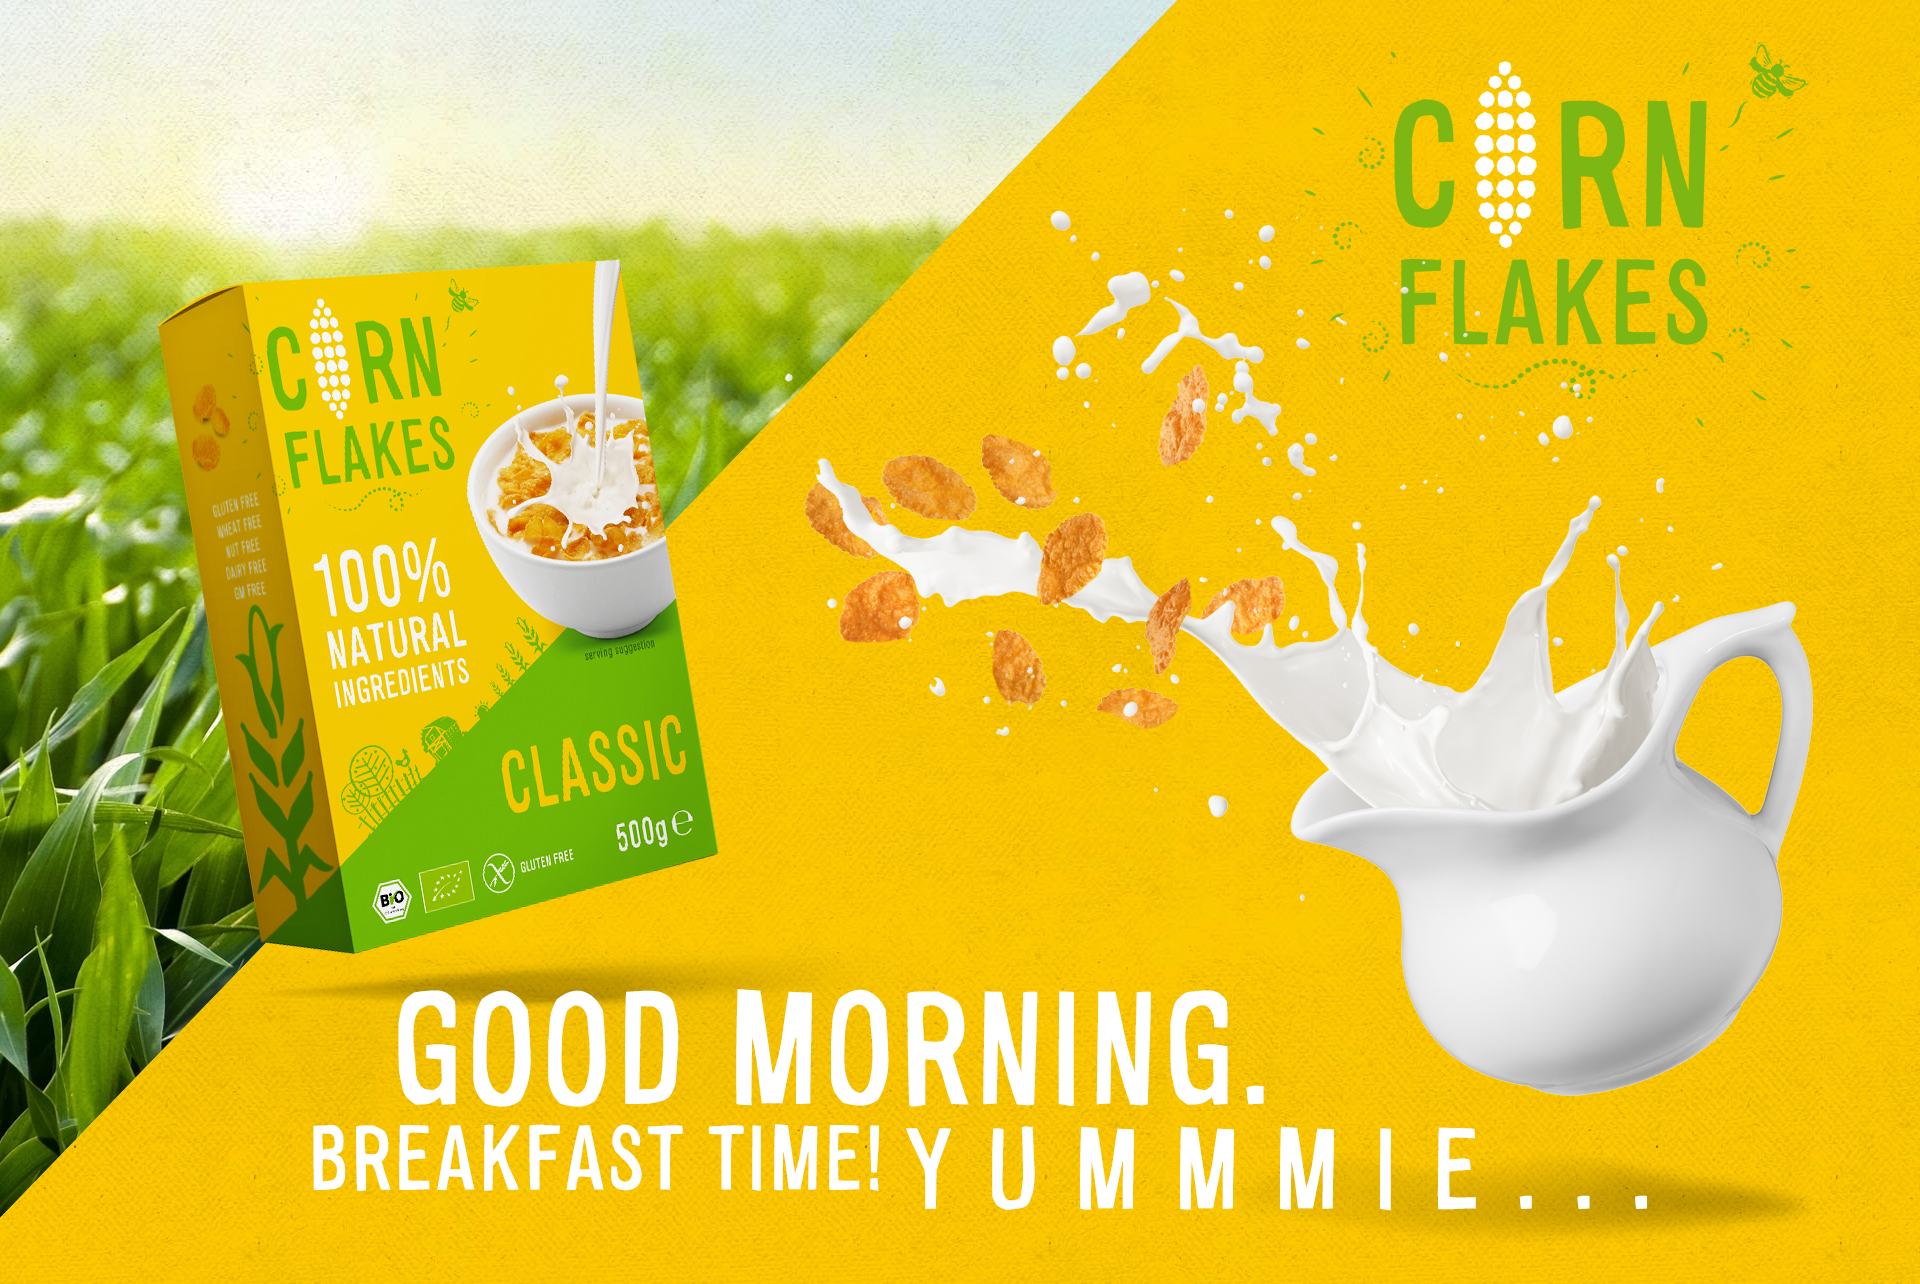 Corn Flakes Packaging Design KeyVisual